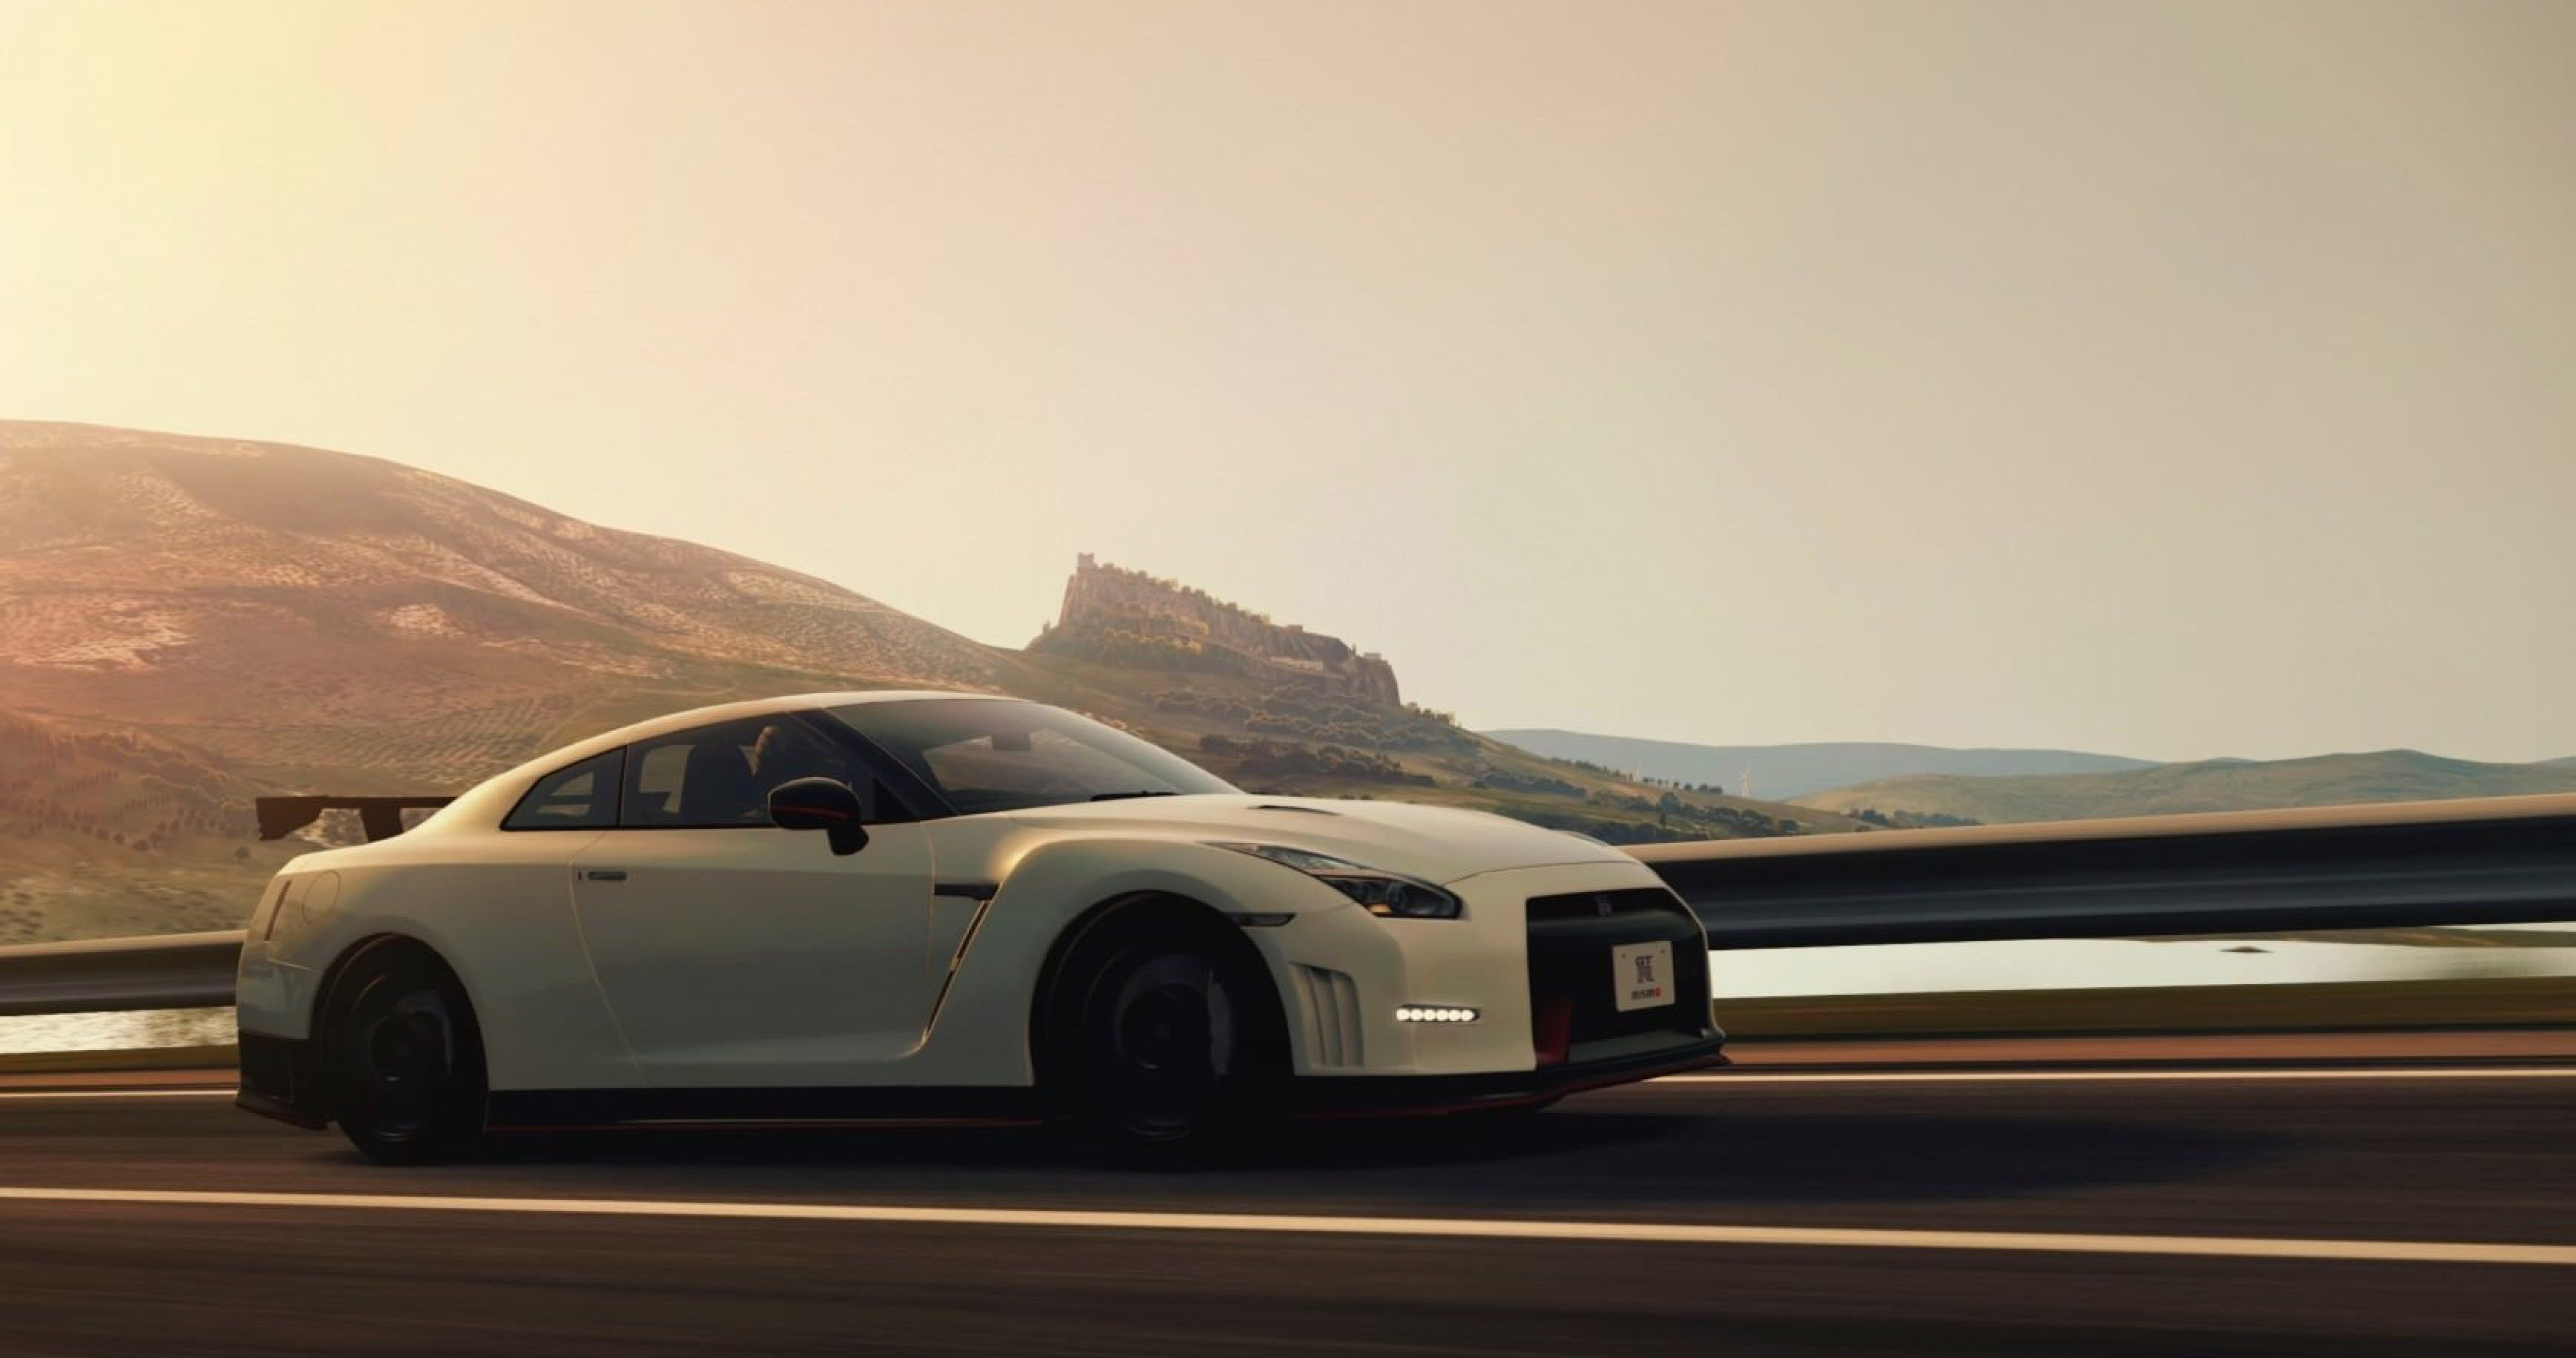 Trackmania Wallpaperfree To Use By Metallica Nissan Gt R Nismo K Ultra Hd Wallpaper